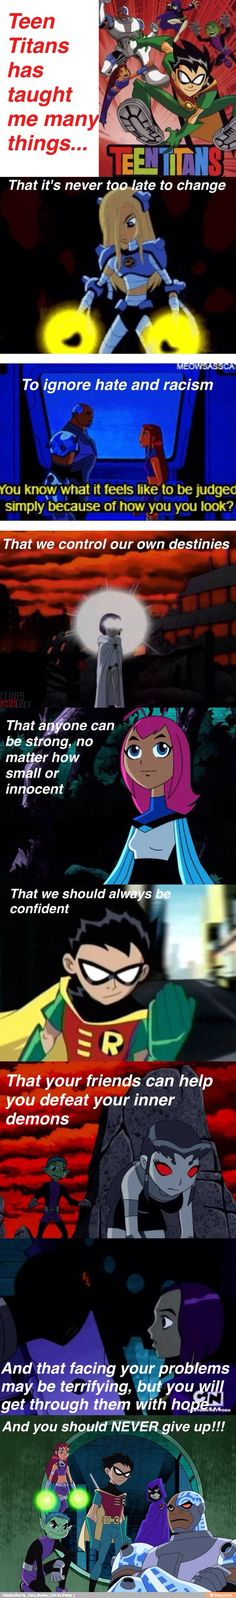 What Teen Titan has taught me: They forgot: to not judge based on looks (starfire changes looks into fully tamaranian), to never give up on love (starfire and robin), to forgive (starfire and her sister), etc.